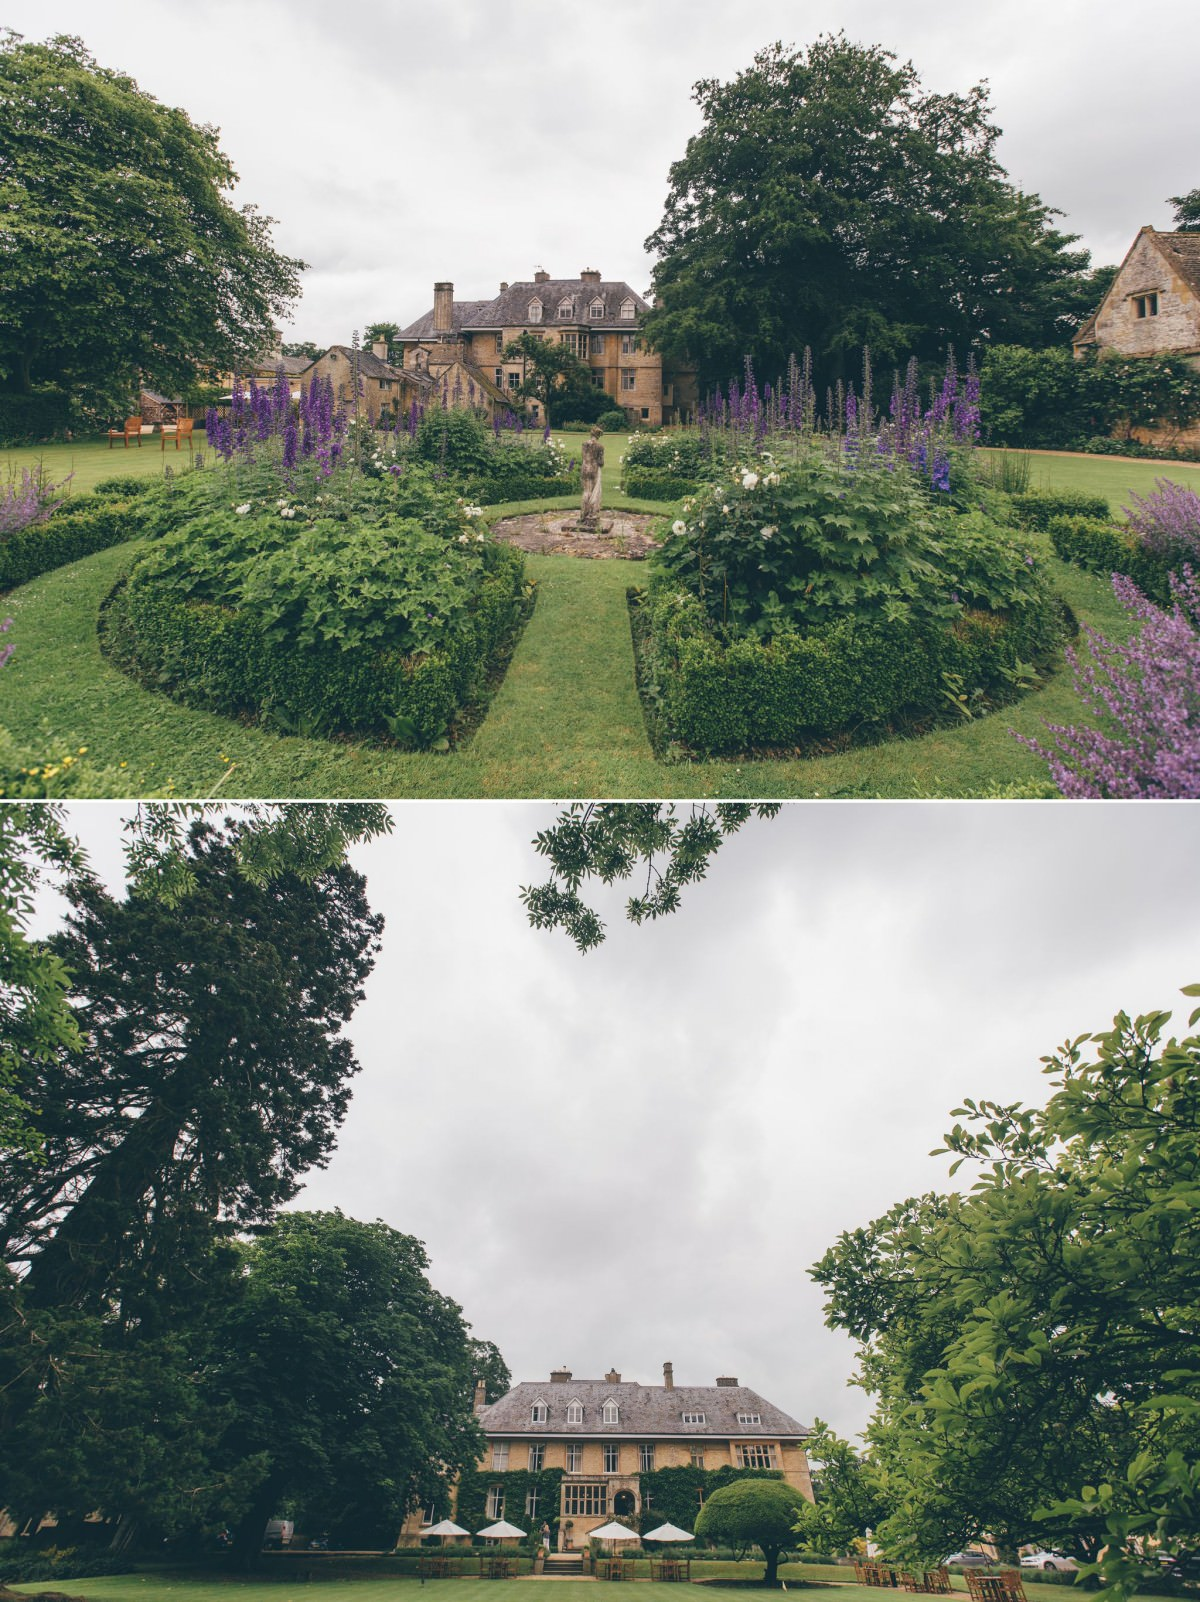 welsh_wedding_photographer_rachel_lambert_photography_lower_slaughter_manor_house_cotswolds_harriet_dean_ 4